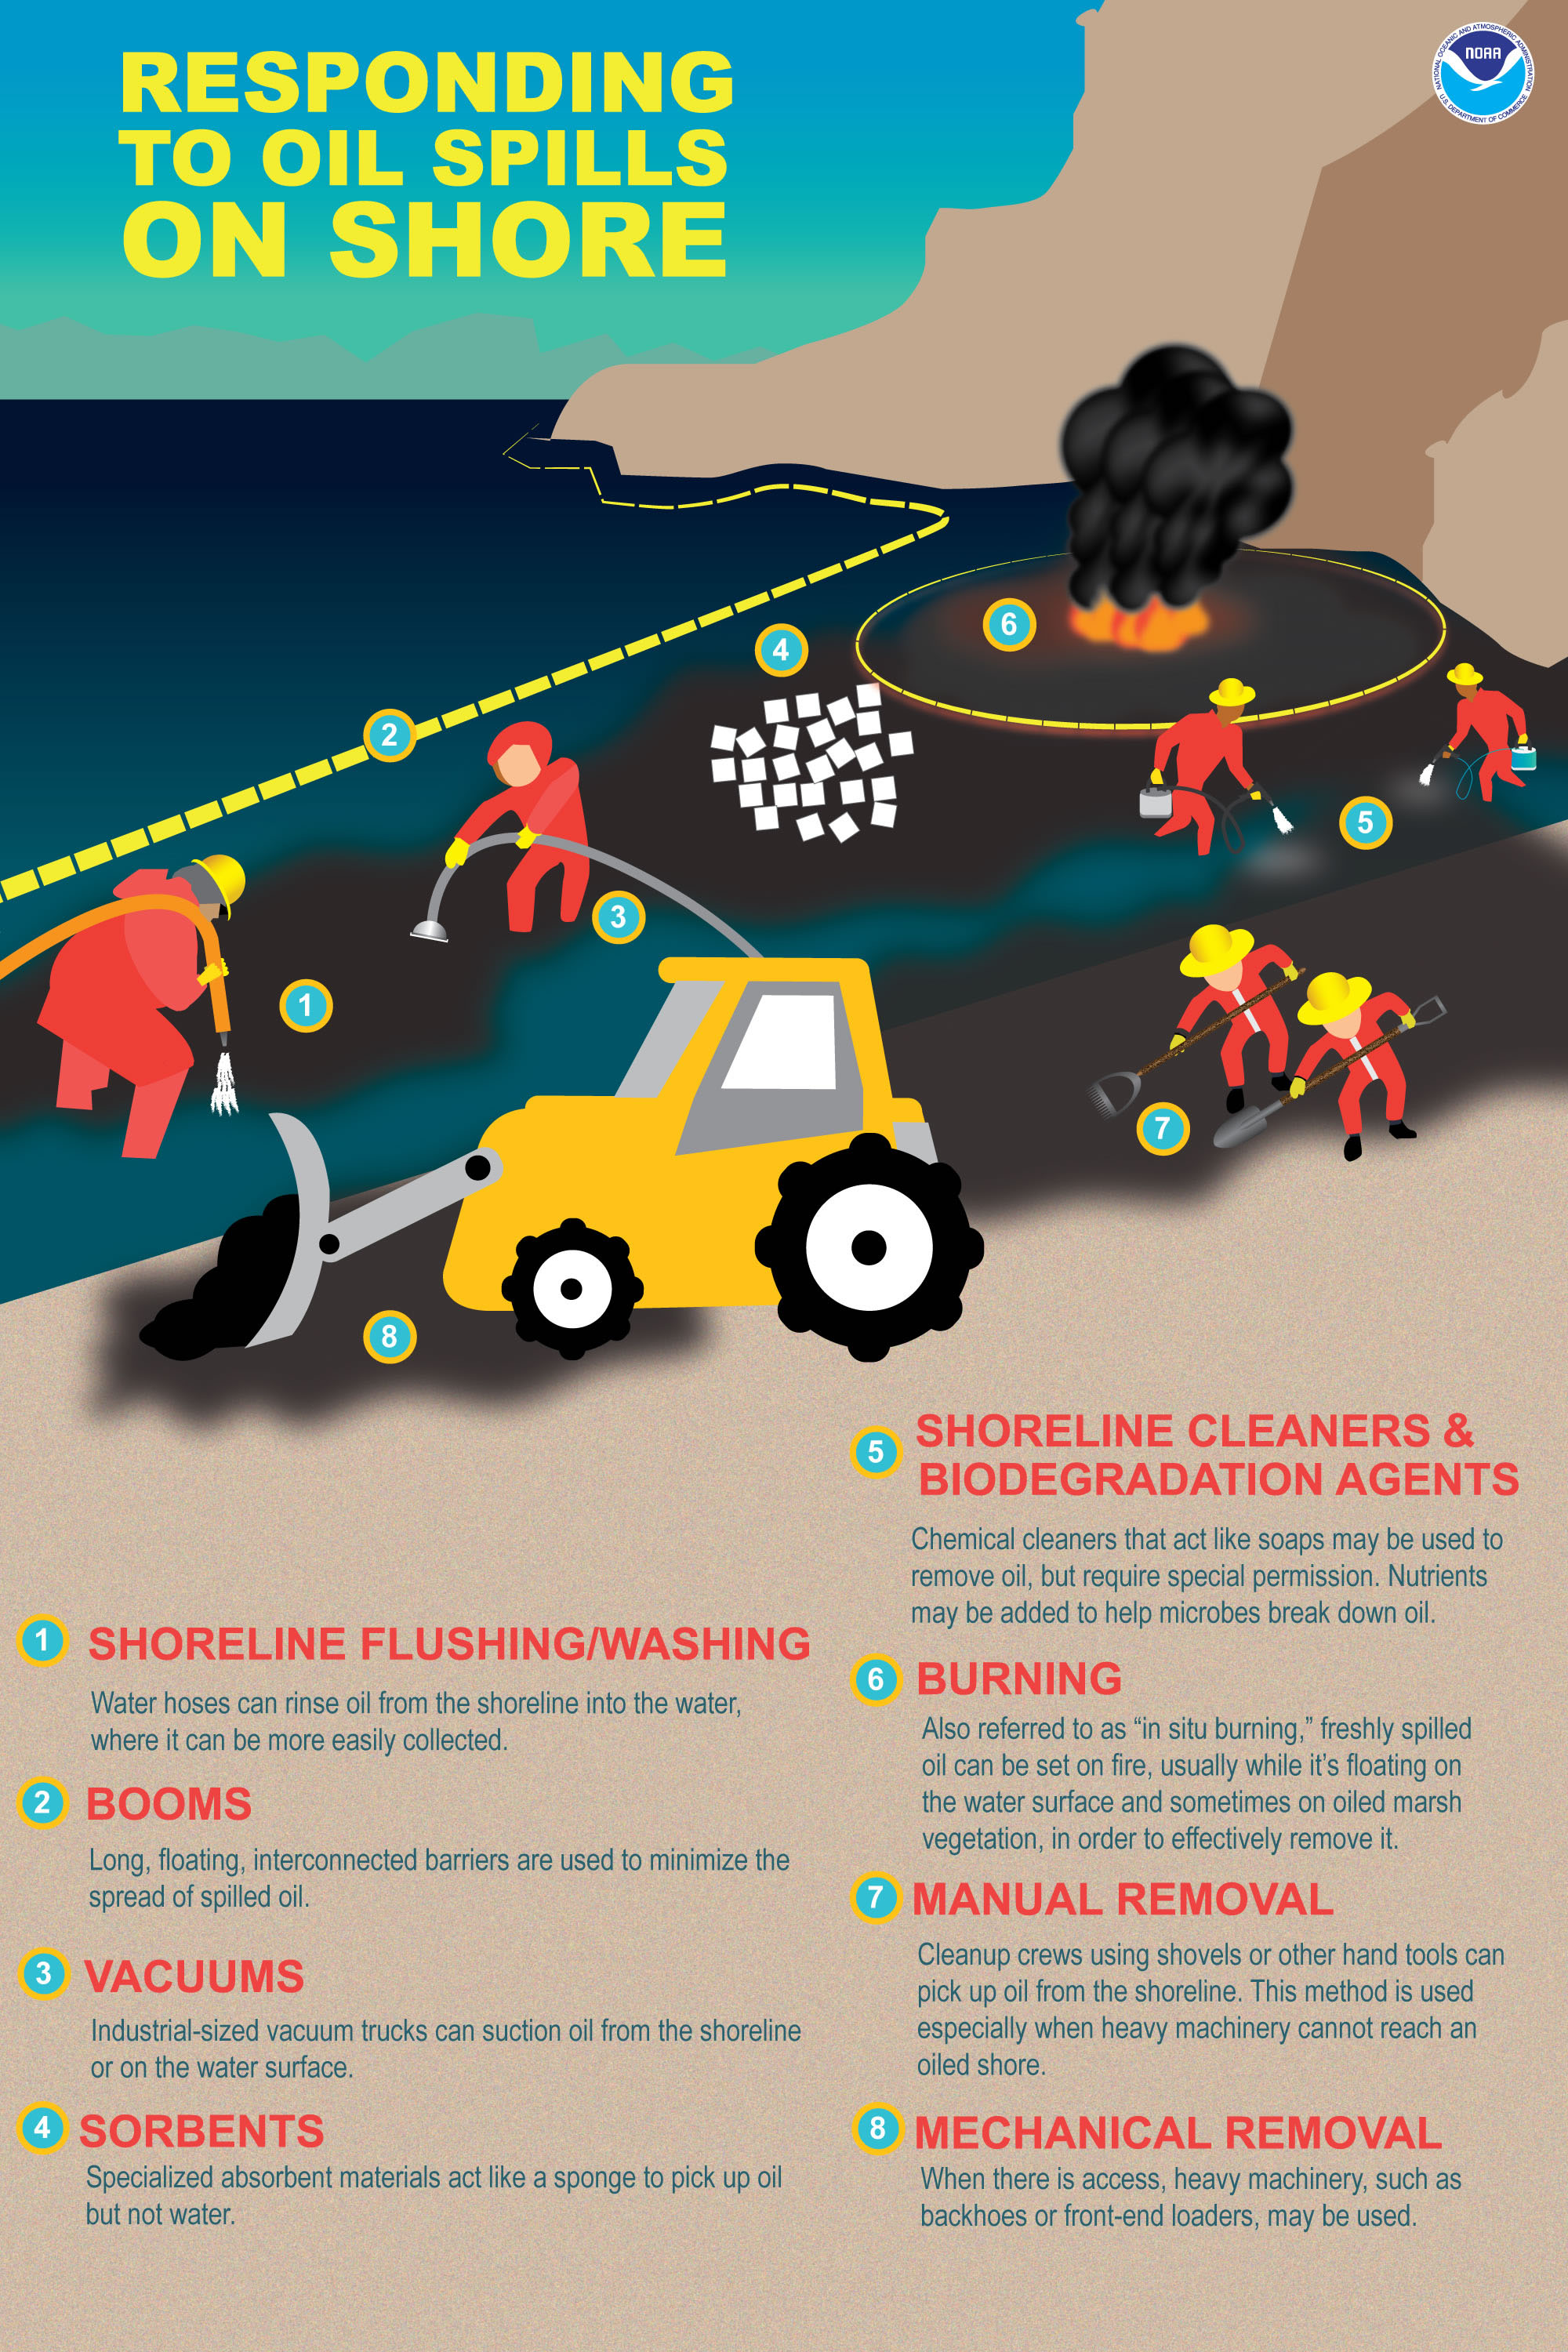 How Do Oil Spills Get Cleaned Up On Shore Responserestoration Eagle Auto Mobile Lift Wiring Diagram Responding To This Is An Overview Of The Various Methods For Cleaning From Shorelines Flushing And Vacuuming Sorbents